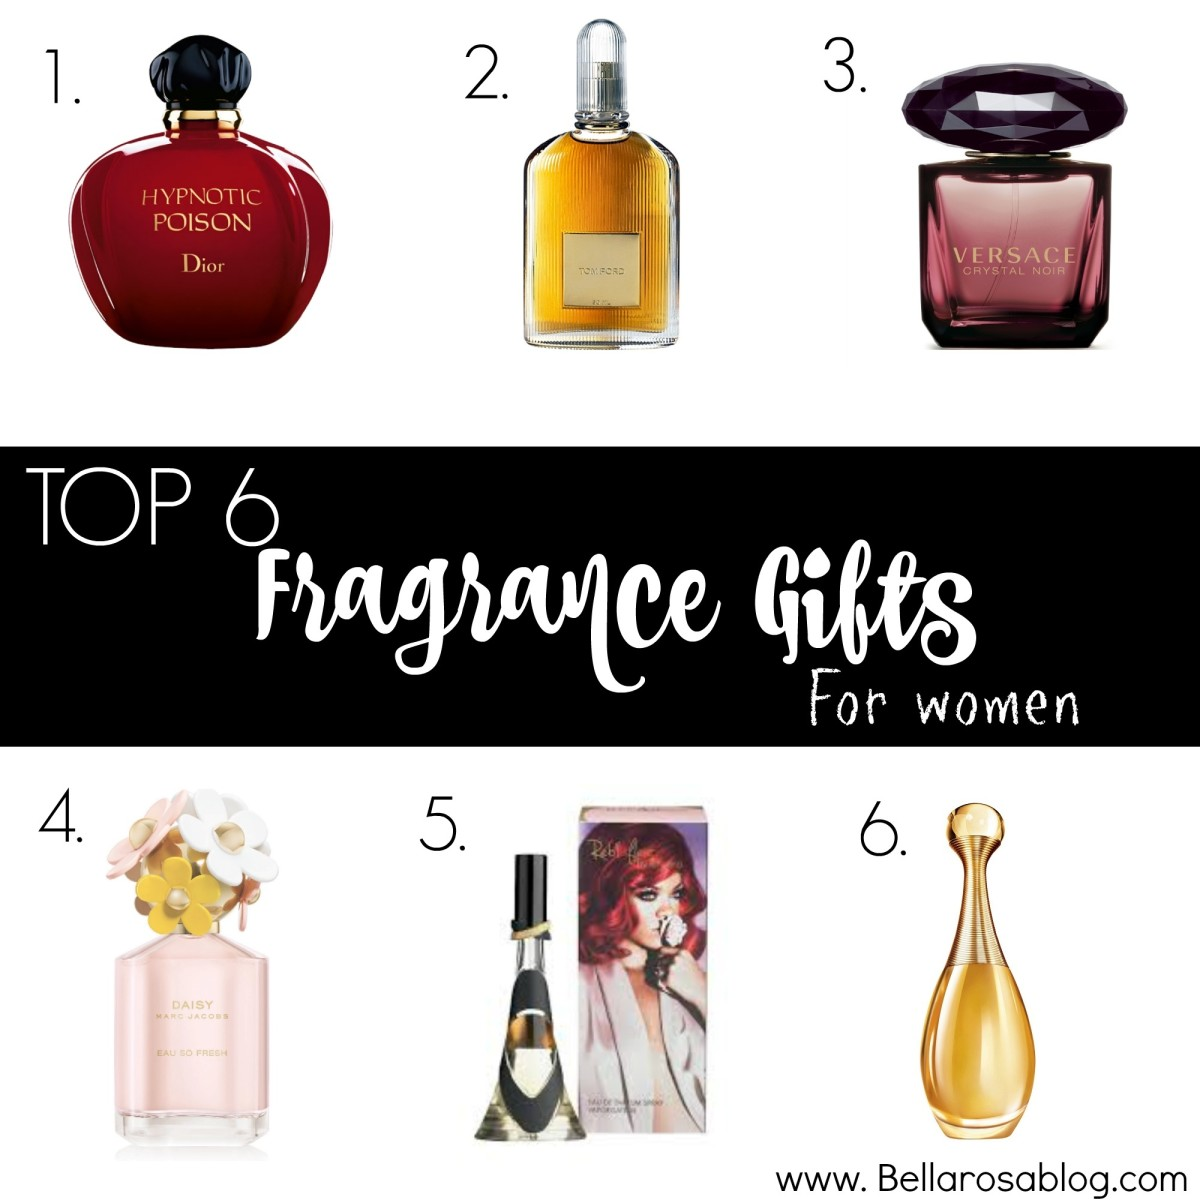 Top Fragrance Gifts | For Women